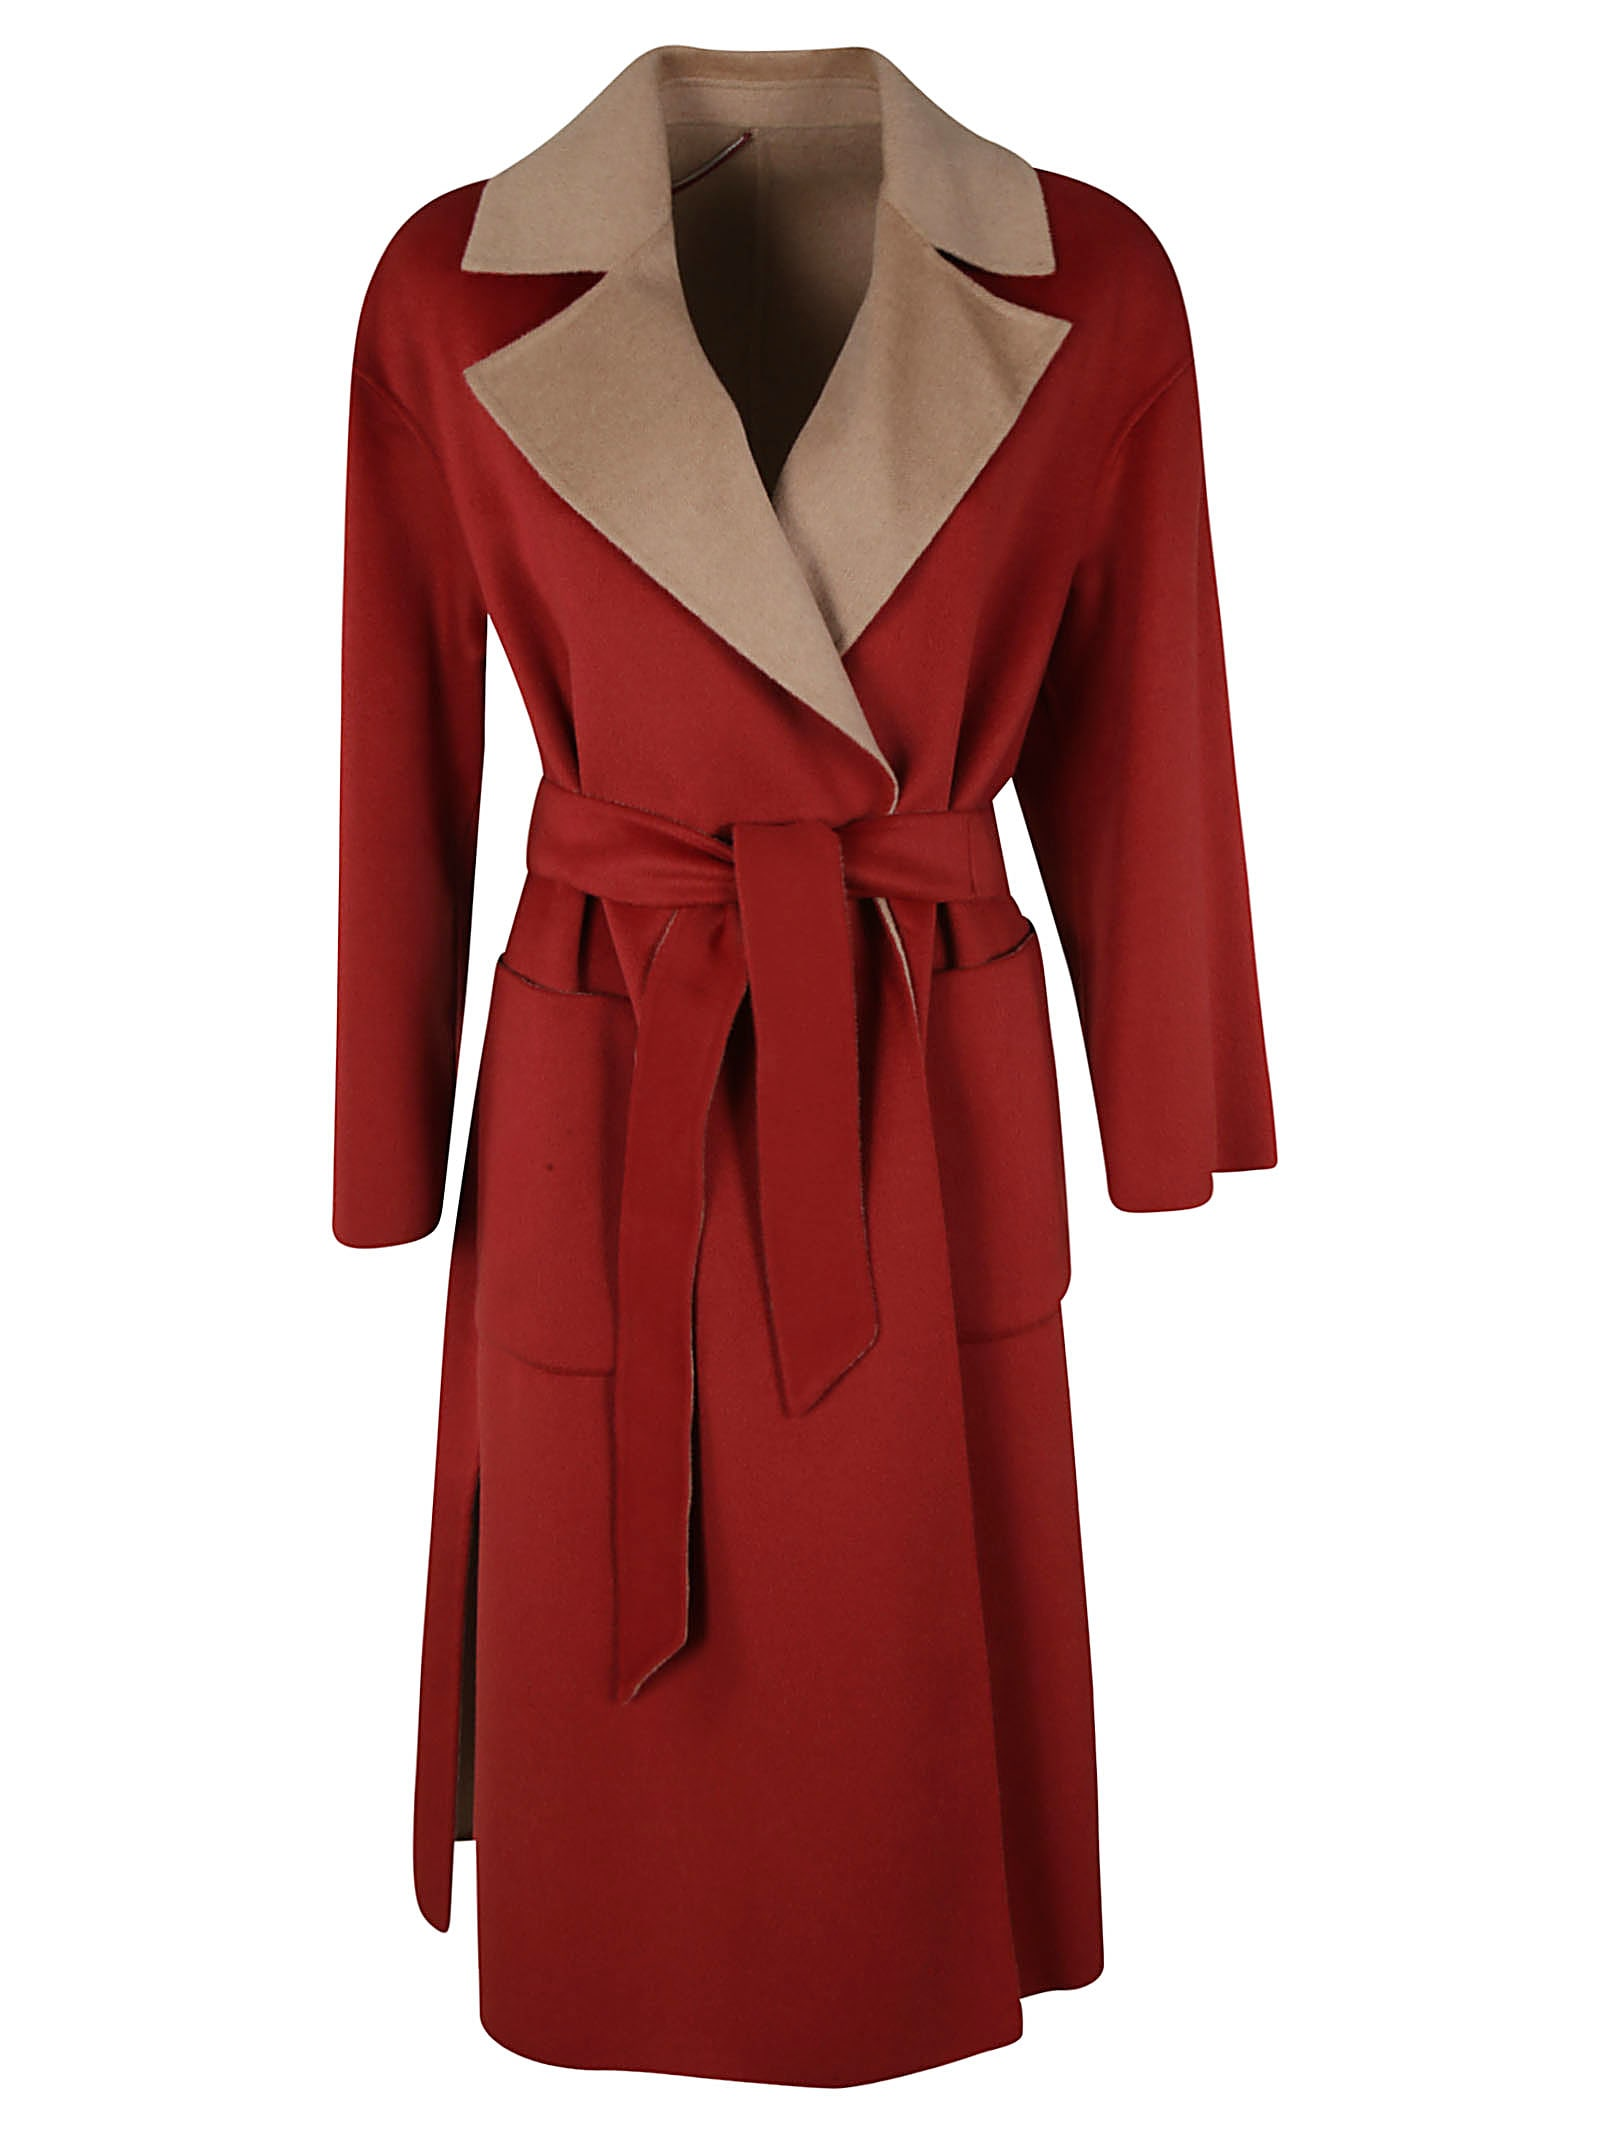 Max Mara Studio Zibetto Coat